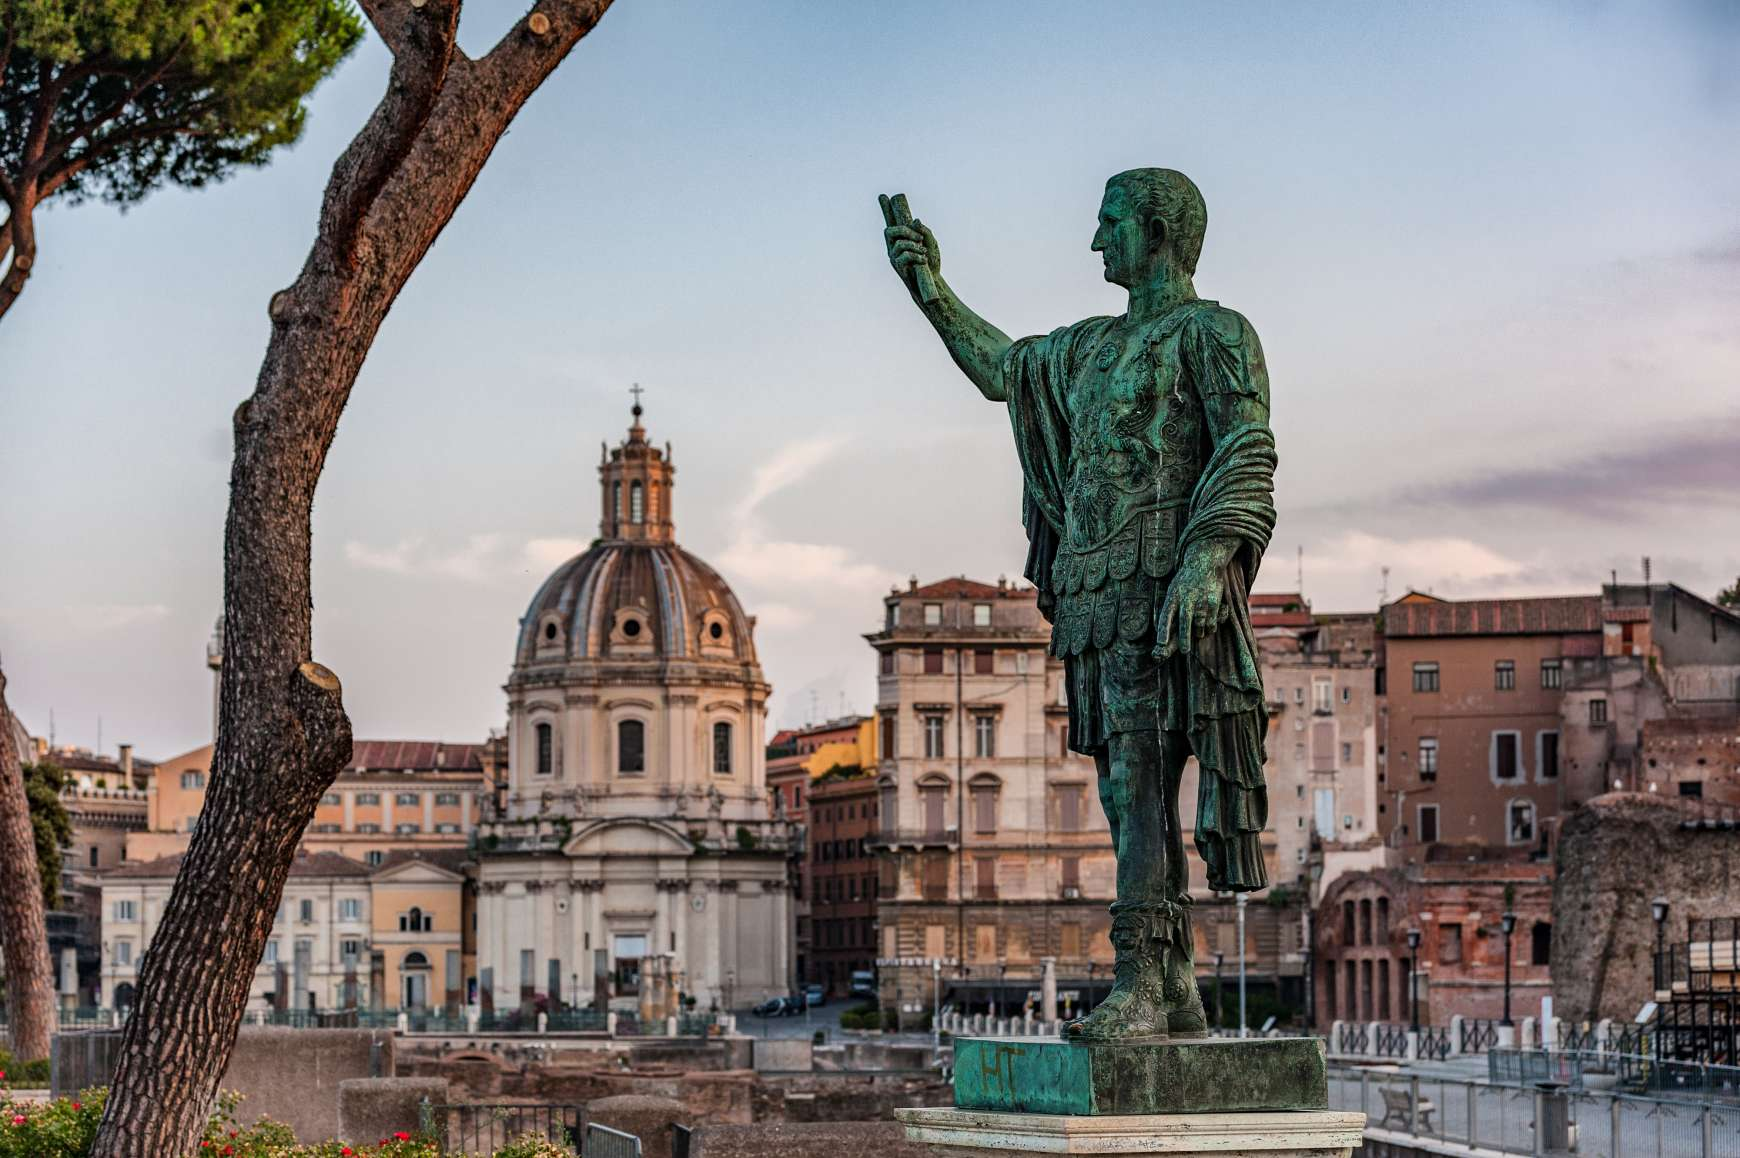 View of statue of Caesar Augustus with Roman Forum in the background